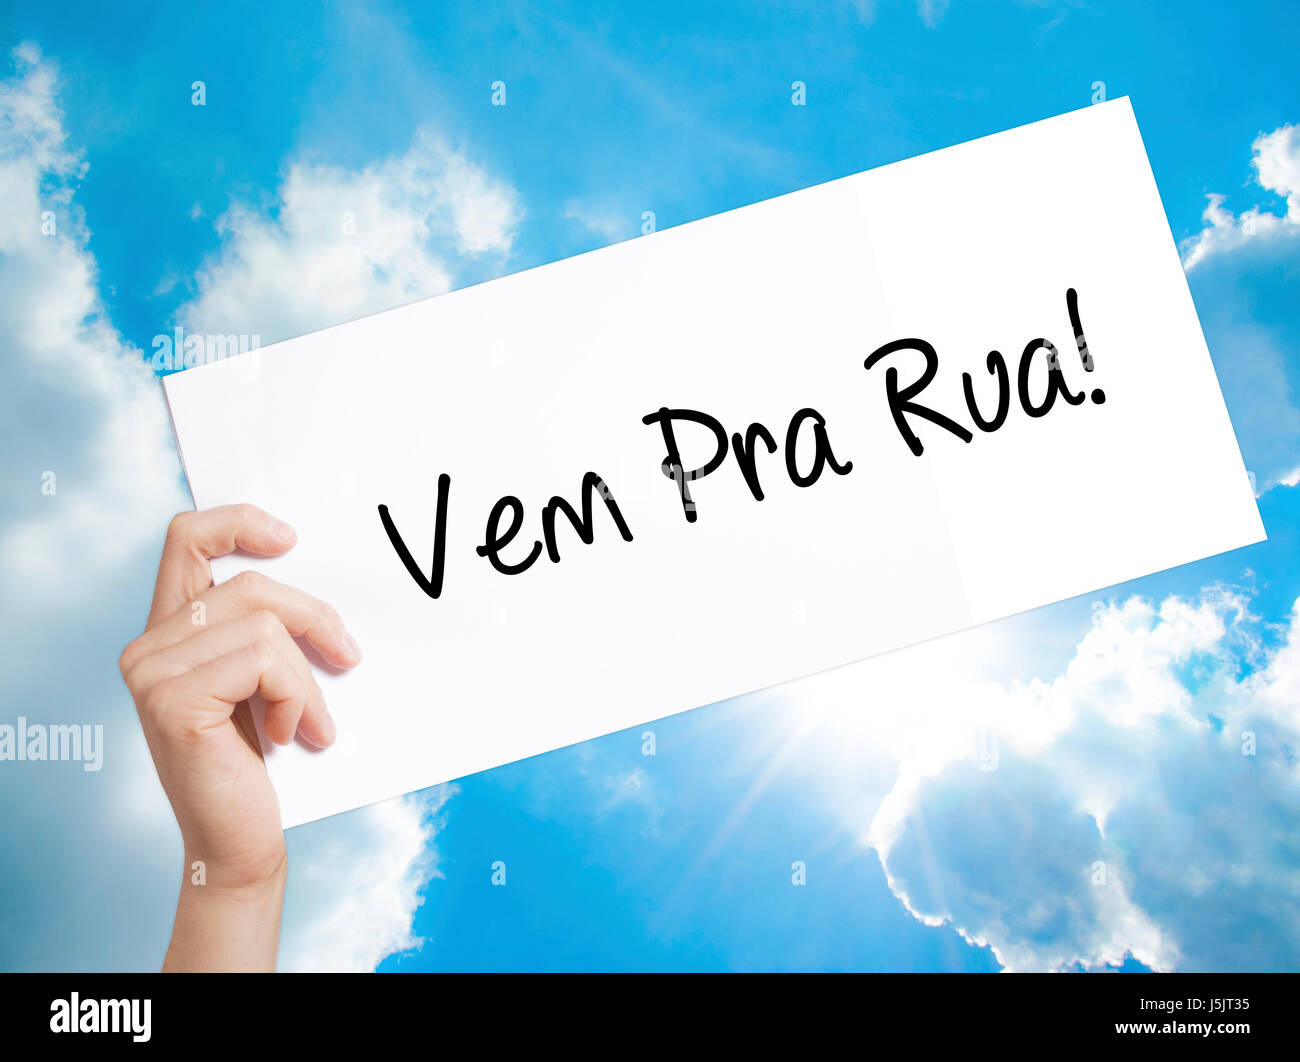 Vem Pra Rua Stock Photos Images Alamy Motor Wiring Diagram Come To Street In Portuguese Sign On White Paper